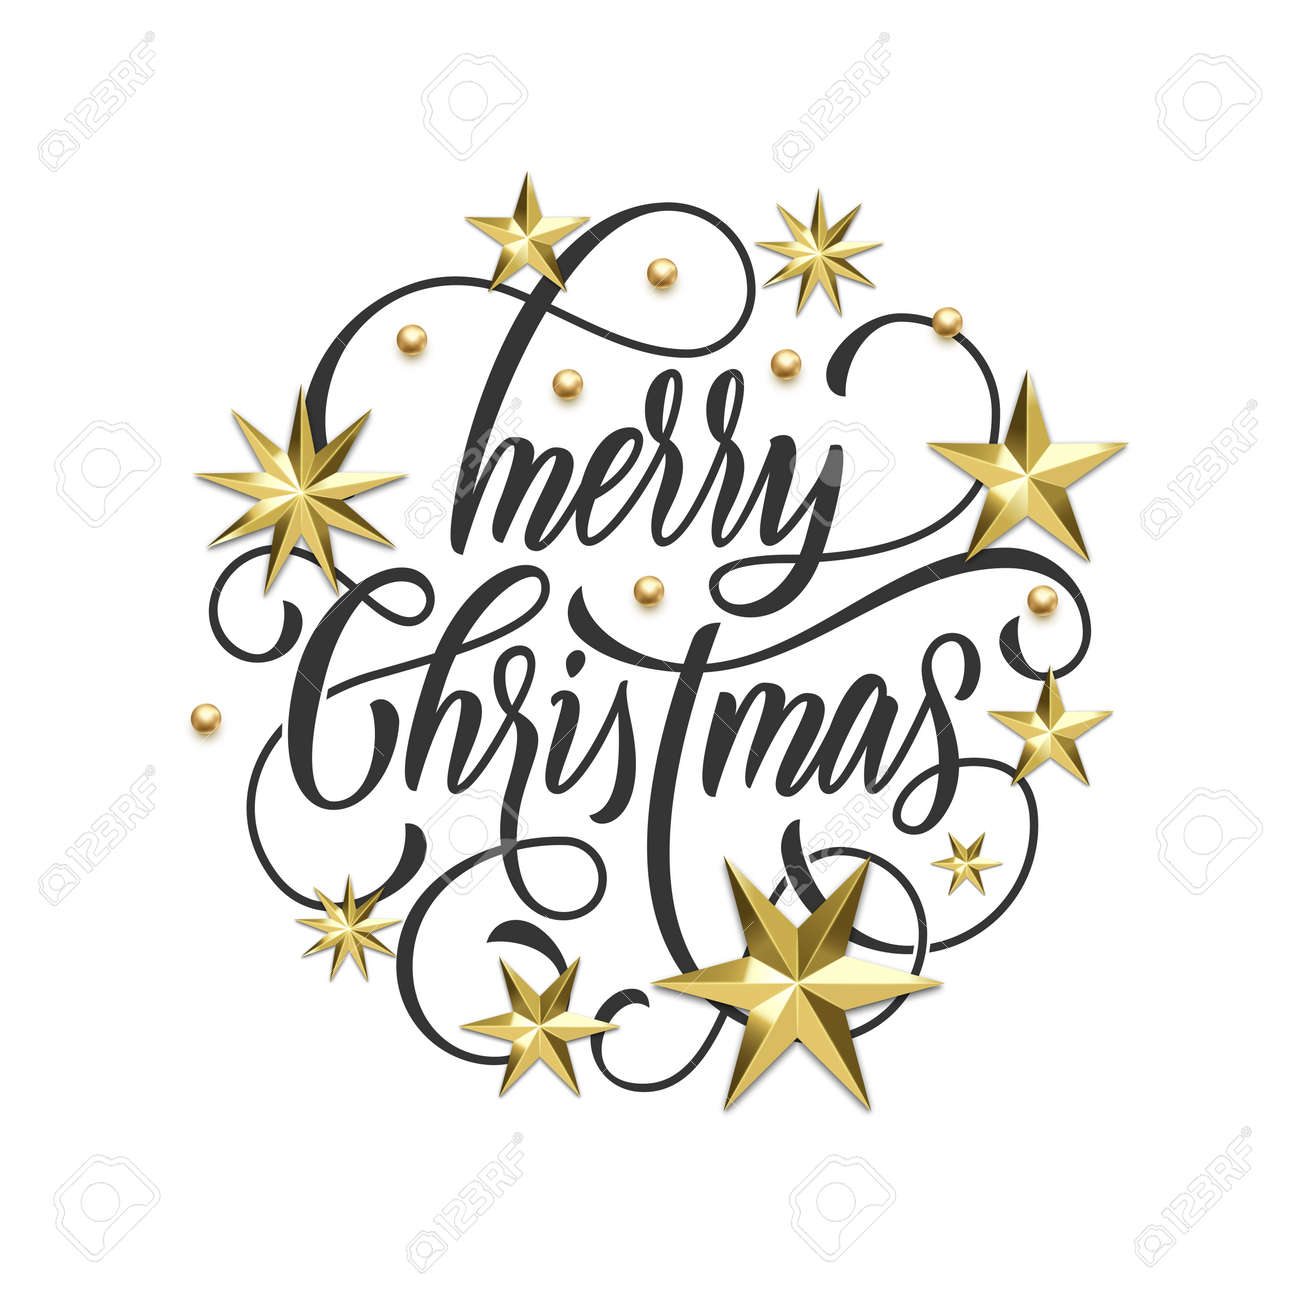 merry christmas golden decoration hand drawn calligraphy font